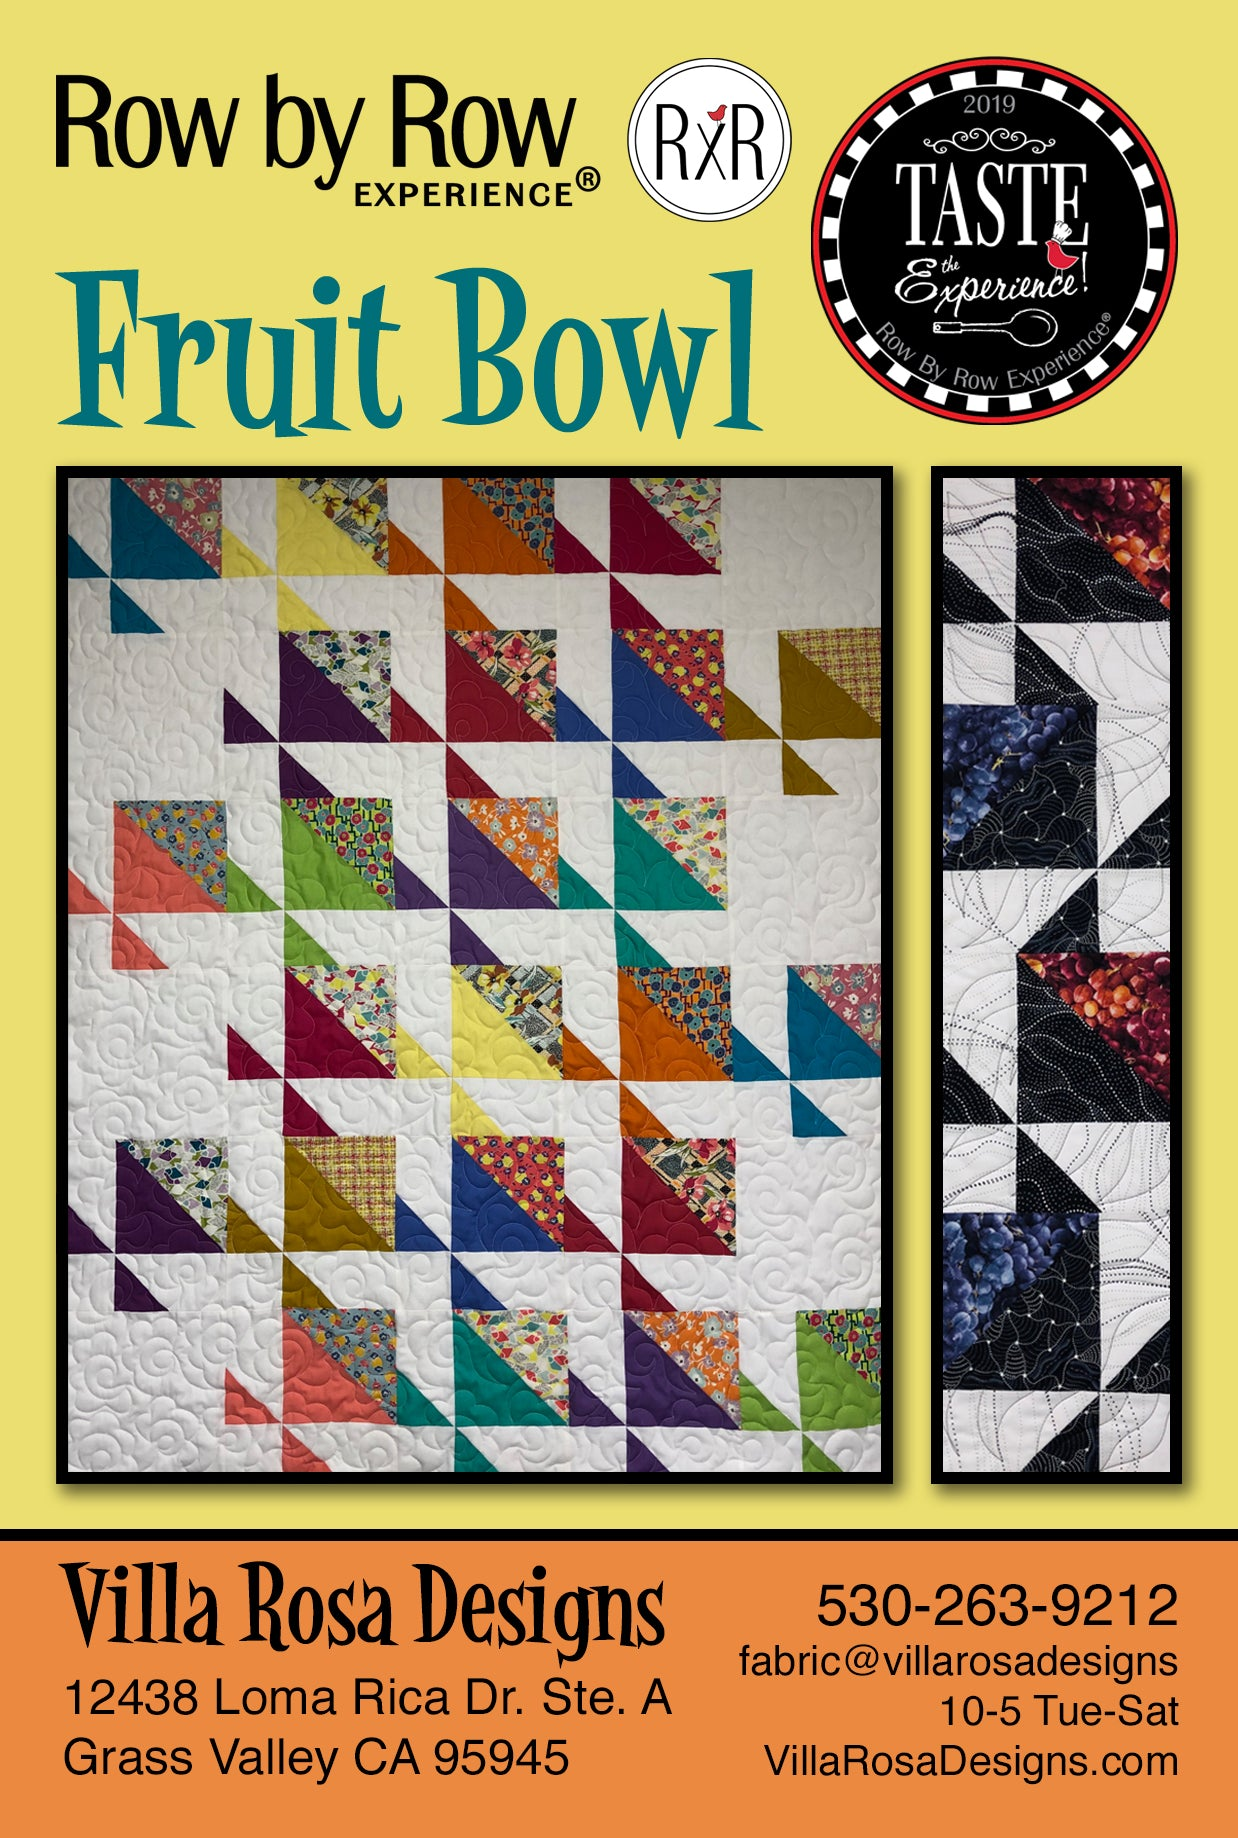 DIGITAL - ROW BY ROW FRUIT BOWL